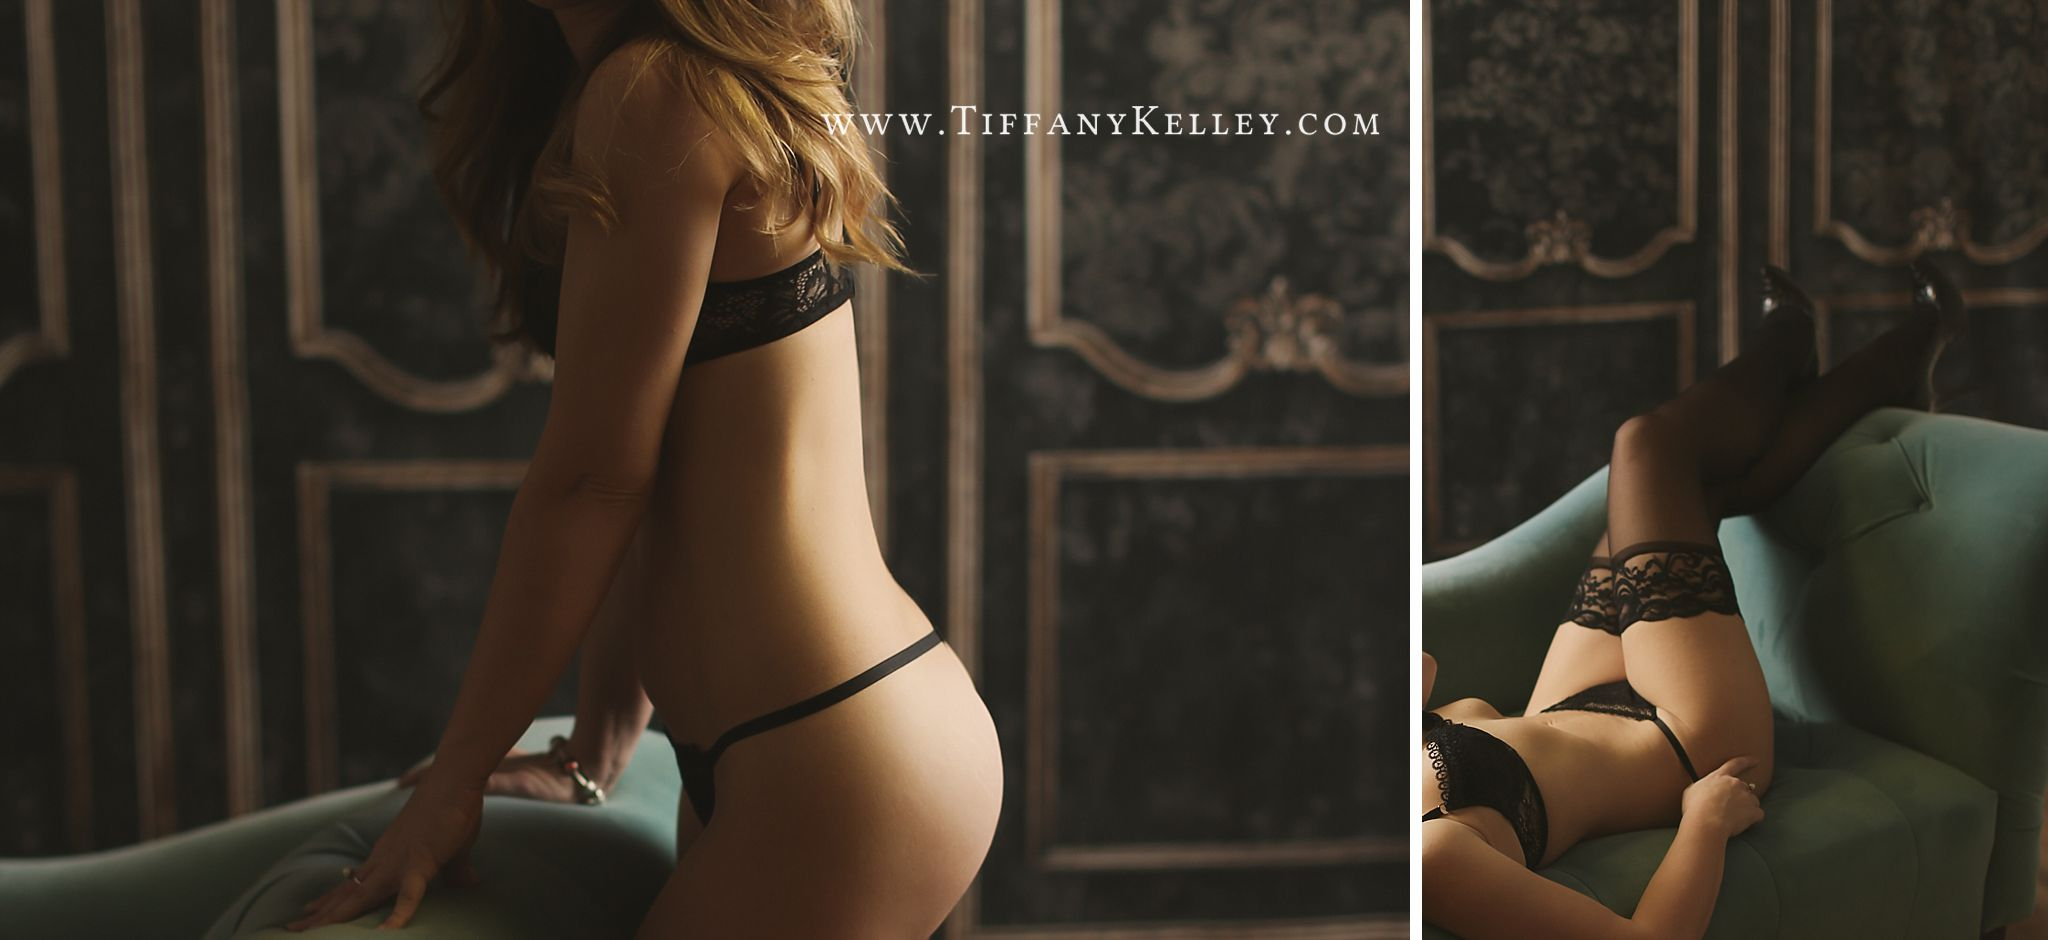 Tiffany Kelley Photography Branson, MO Boudoir Photographer